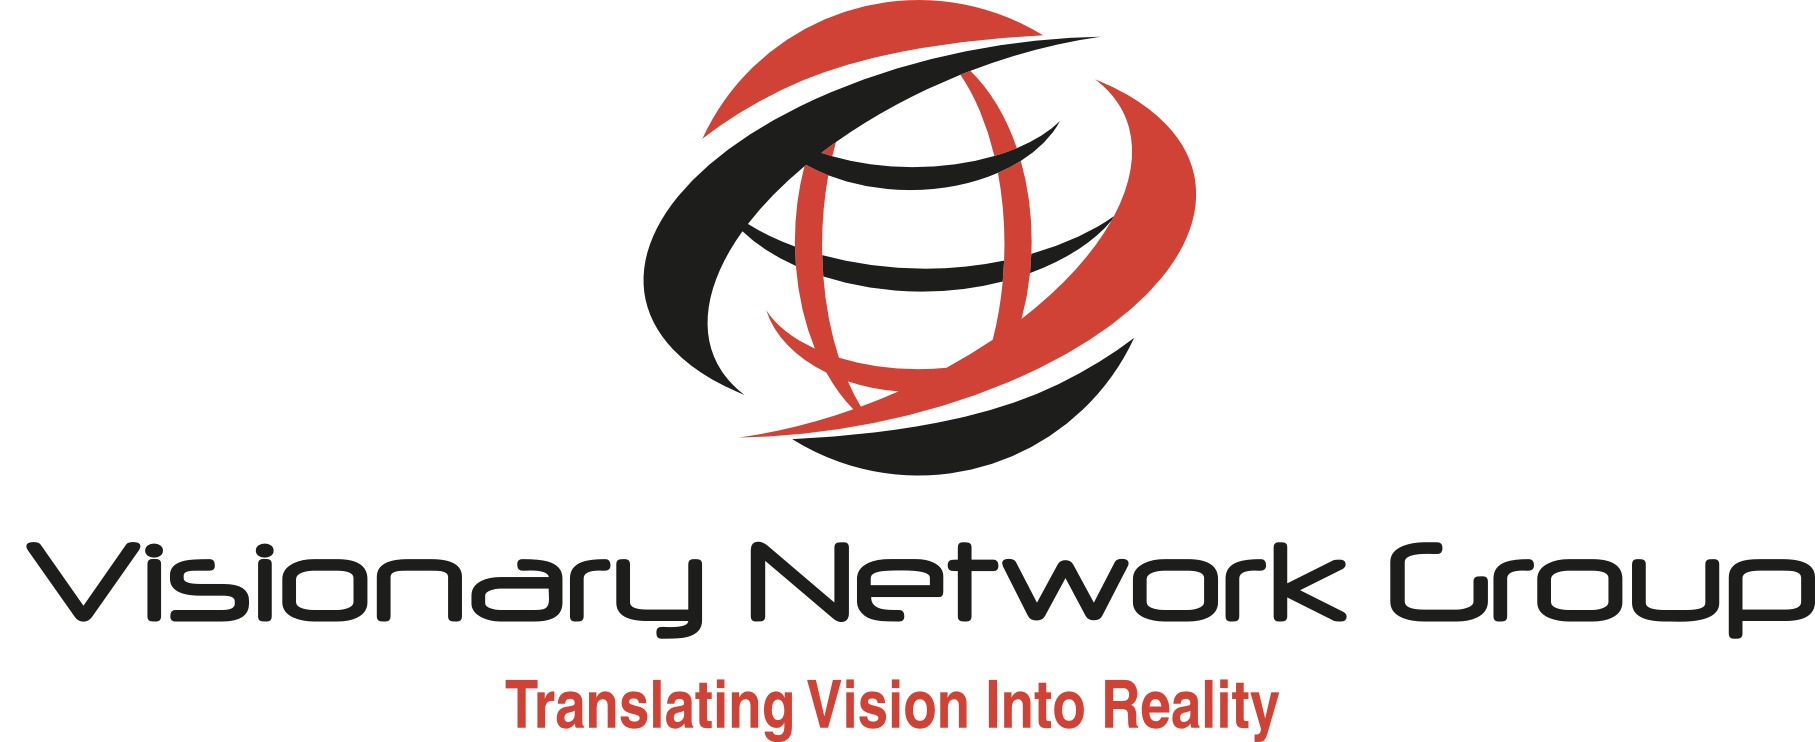 Visionary Network